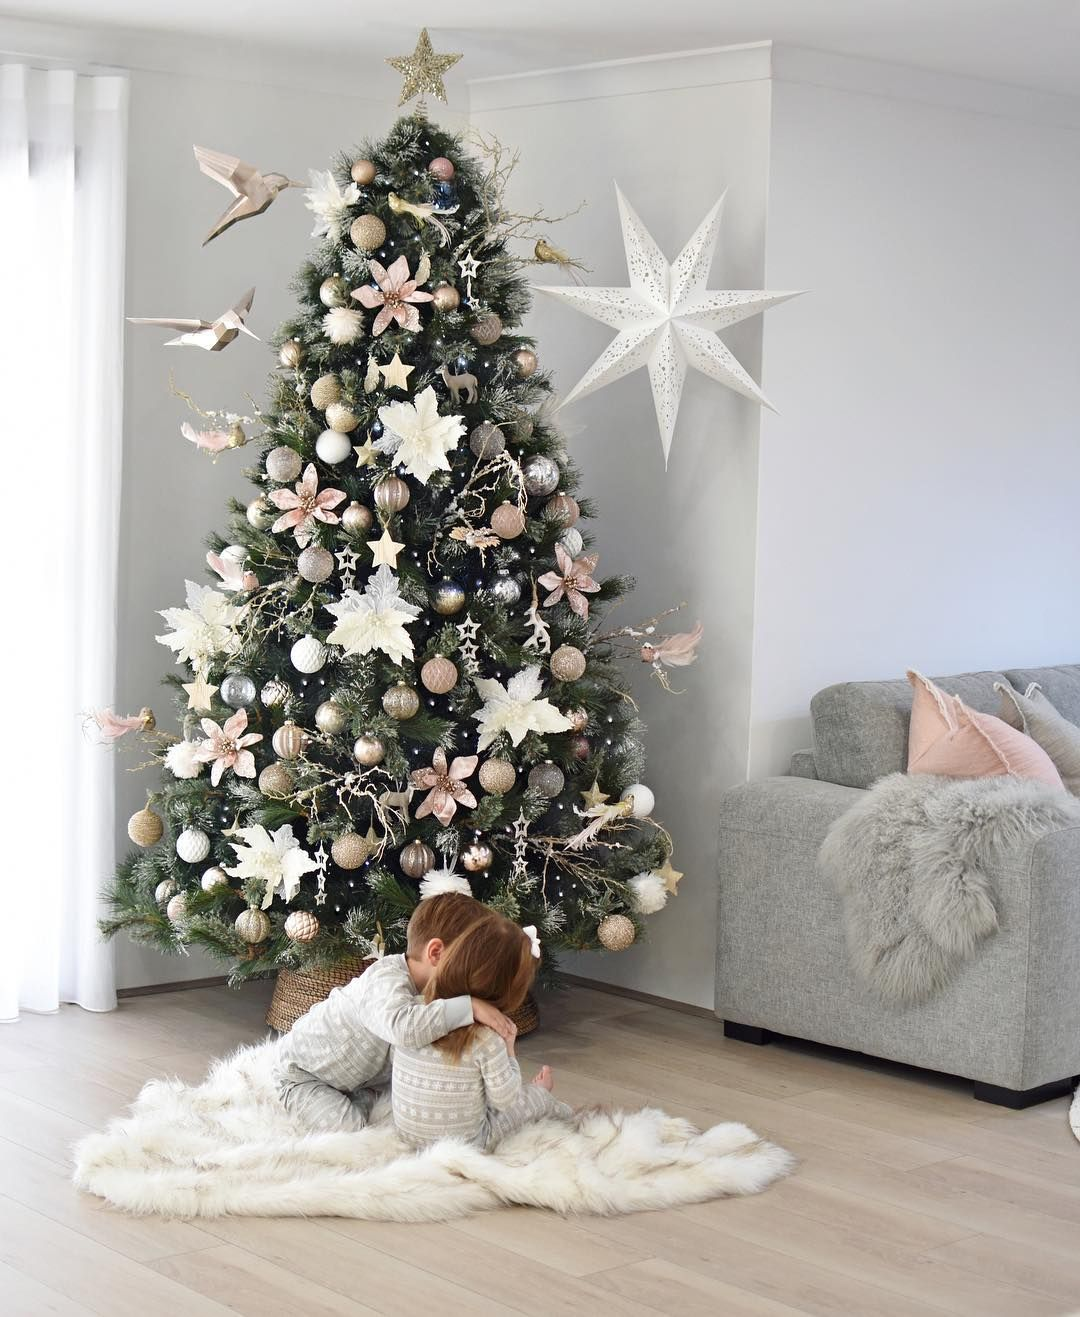 These Two The Christmas Range From Bedbathntable Is Now 30 Off Link In My Bio Sponsored Bedbathnta Decor Christmas Tree Design Baby Room Decor